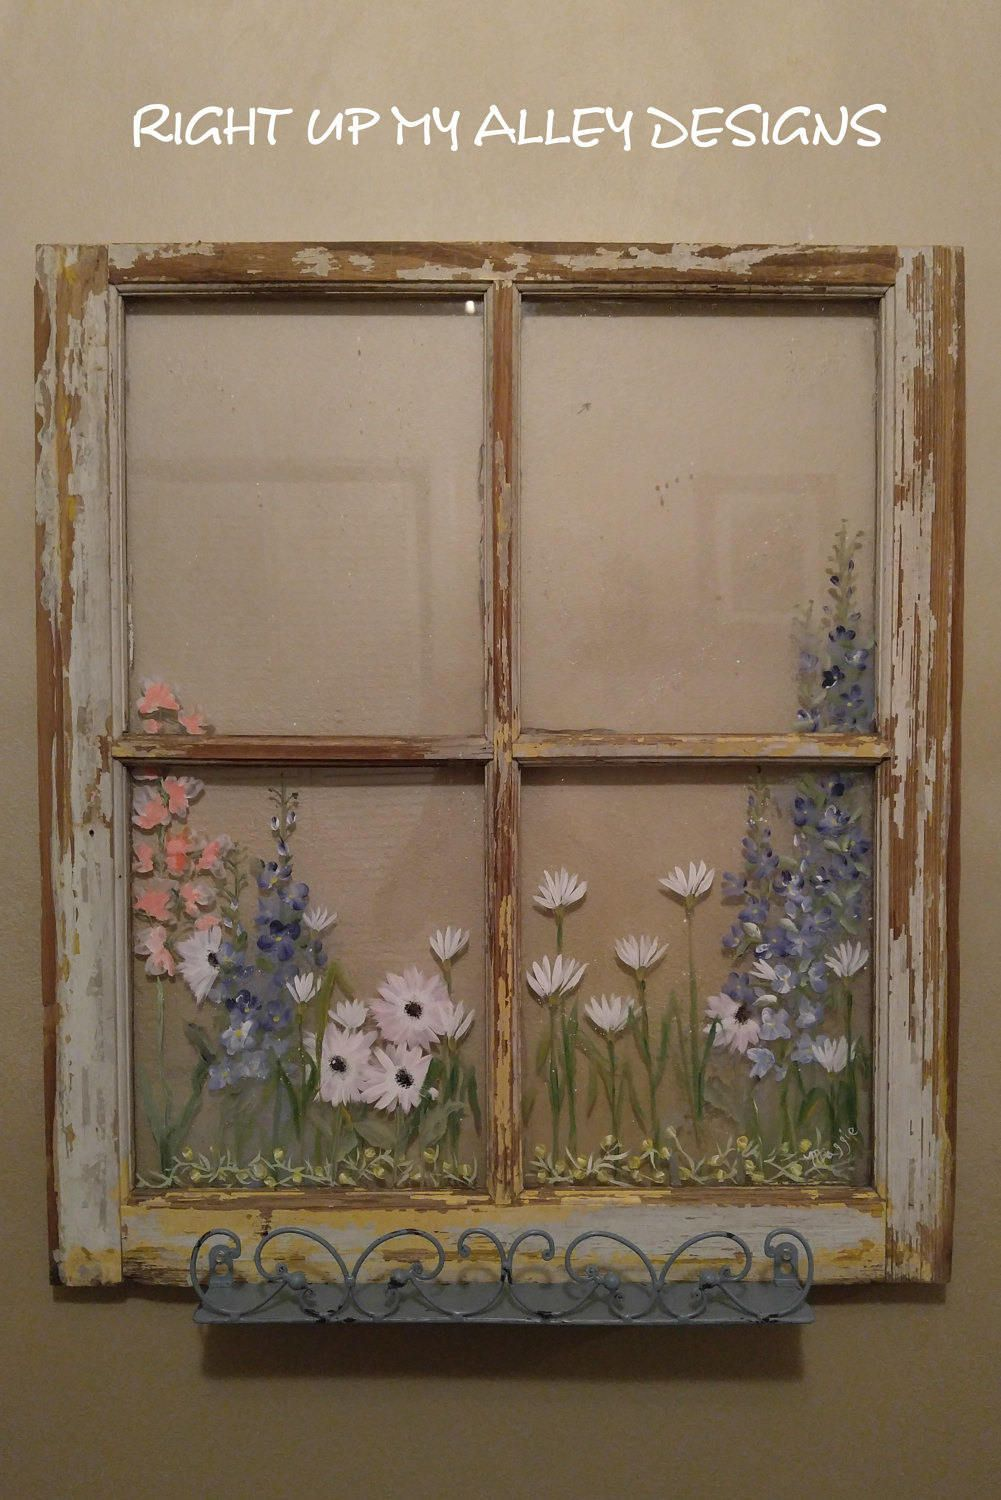 Hand Painted Floral Old Window With Decorative Distressed Blue Shelf This Would Look So Cute In A Bathroom Window Painting Window Crafts Painted Window Panes